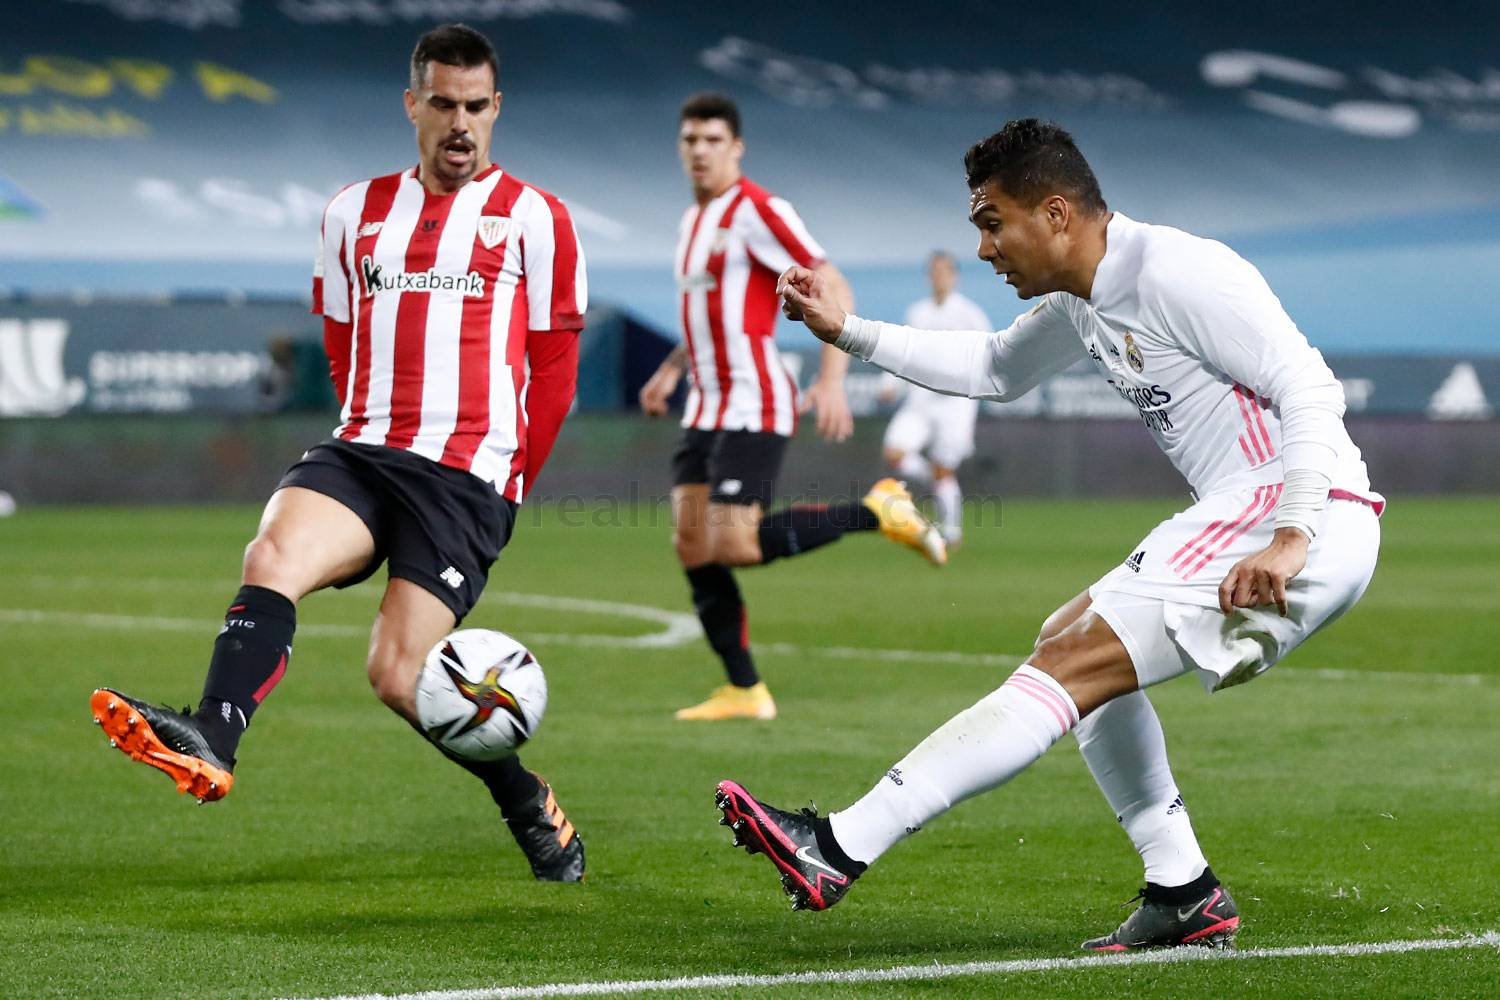 Real Madrid - Real Madrid - Athletic Club - 20-01-2021